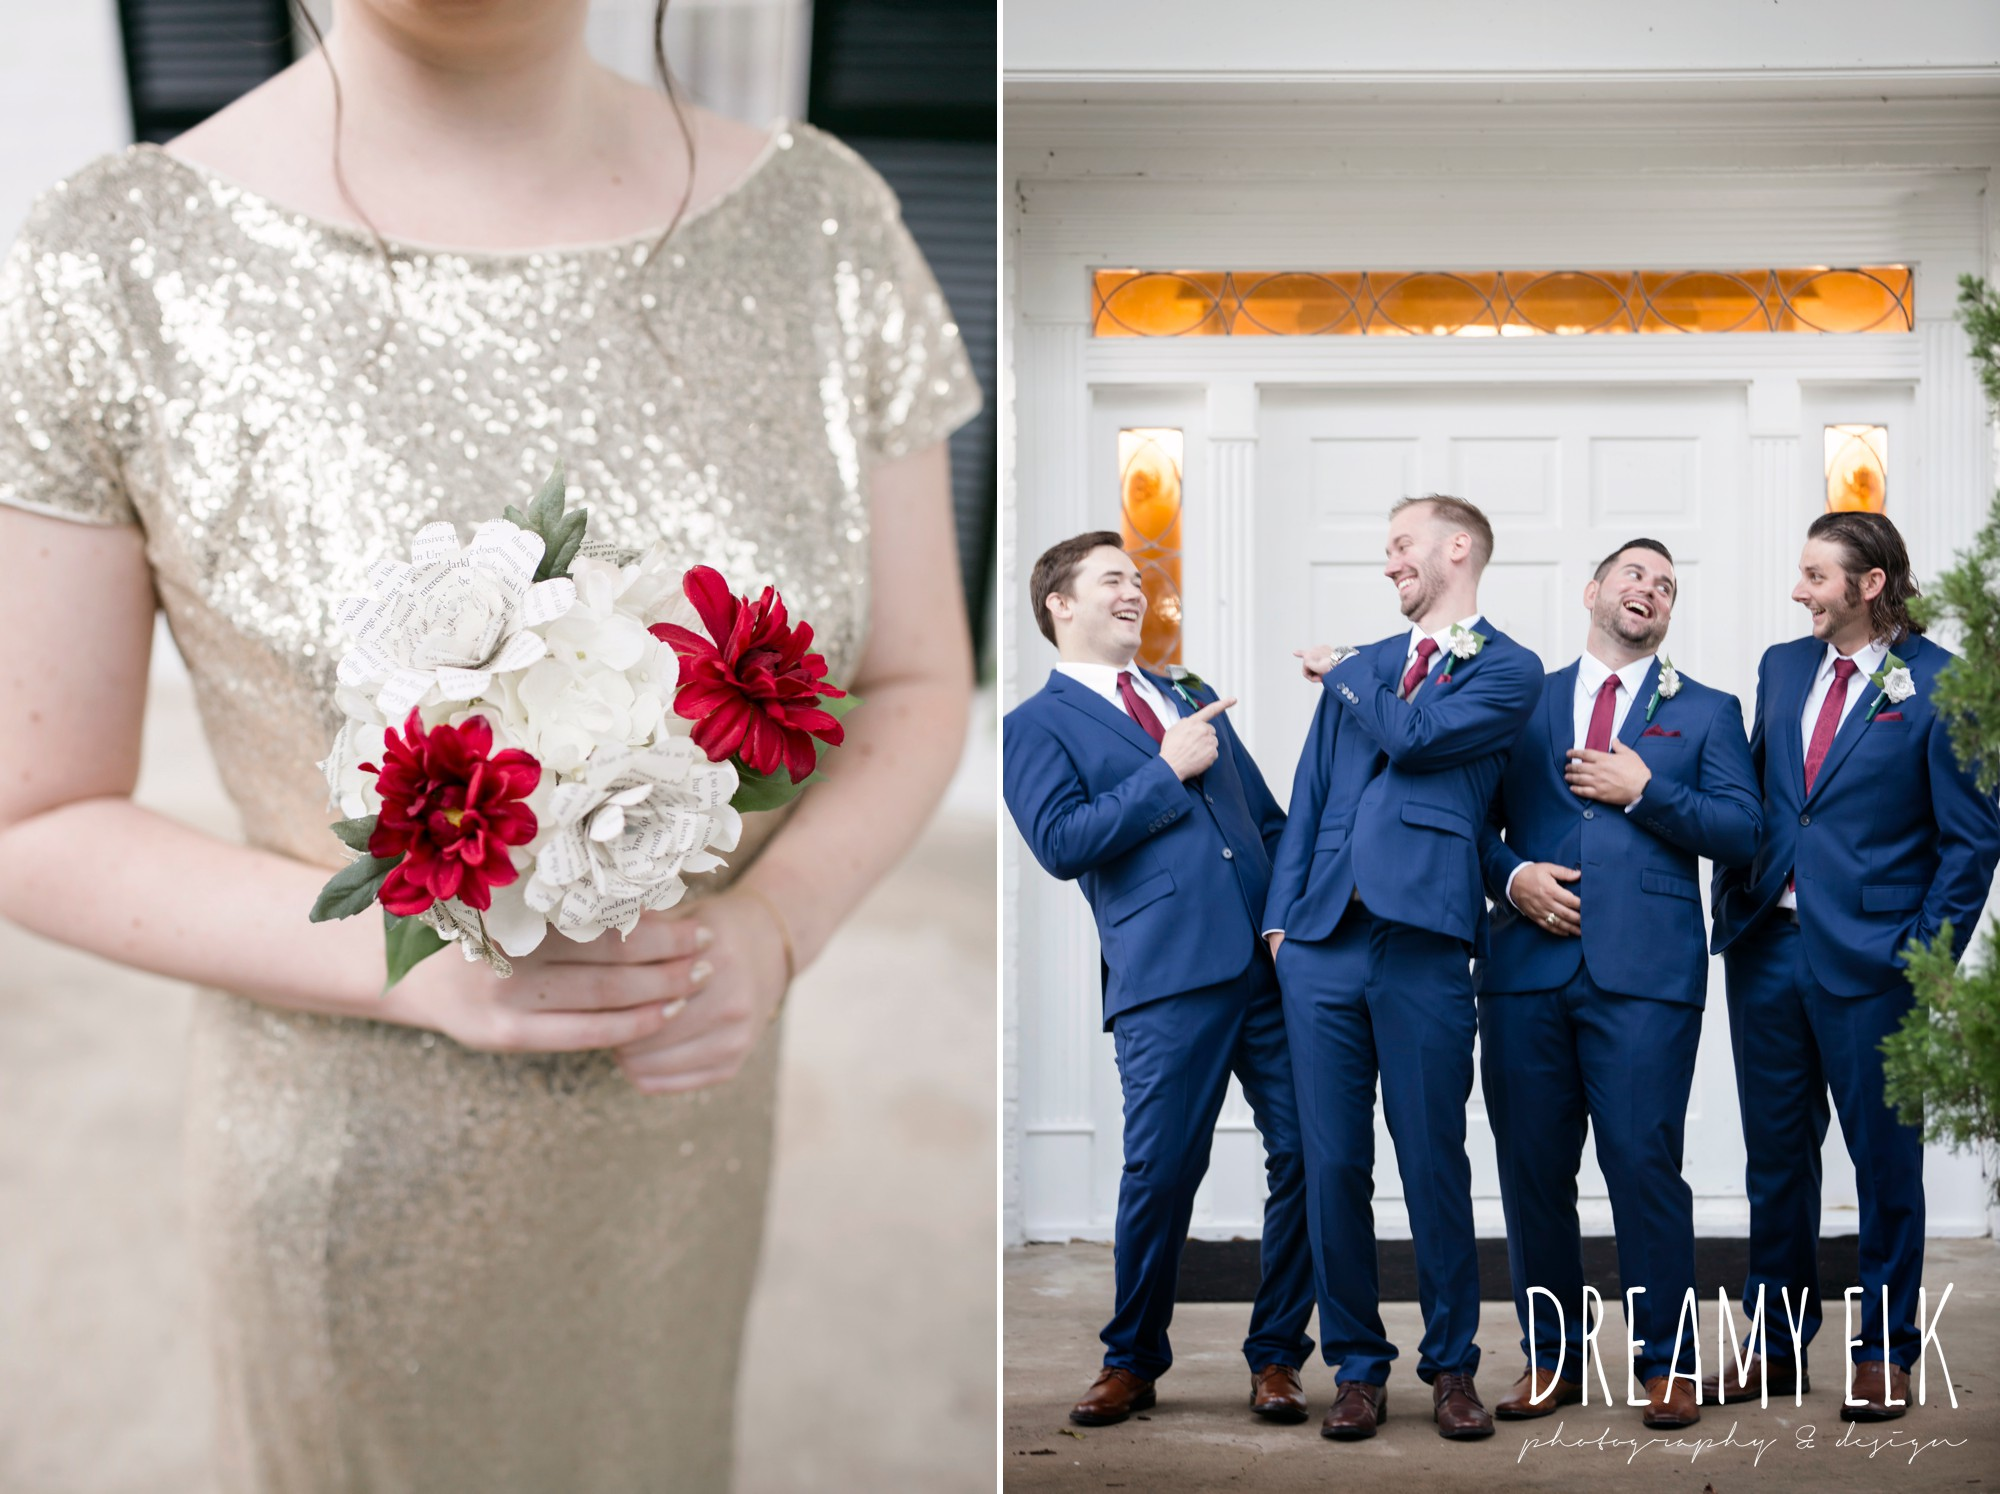 gold sequin floor length cowl back bridesmaid dress, groom and groomsmen, navy suit gray vest maroon tie, Bravo suit and tux, fall wedding, gold and navy wedding photo, ashelynn manor, austin texas wedding photographer, dreamy elk photography and design, emily ross